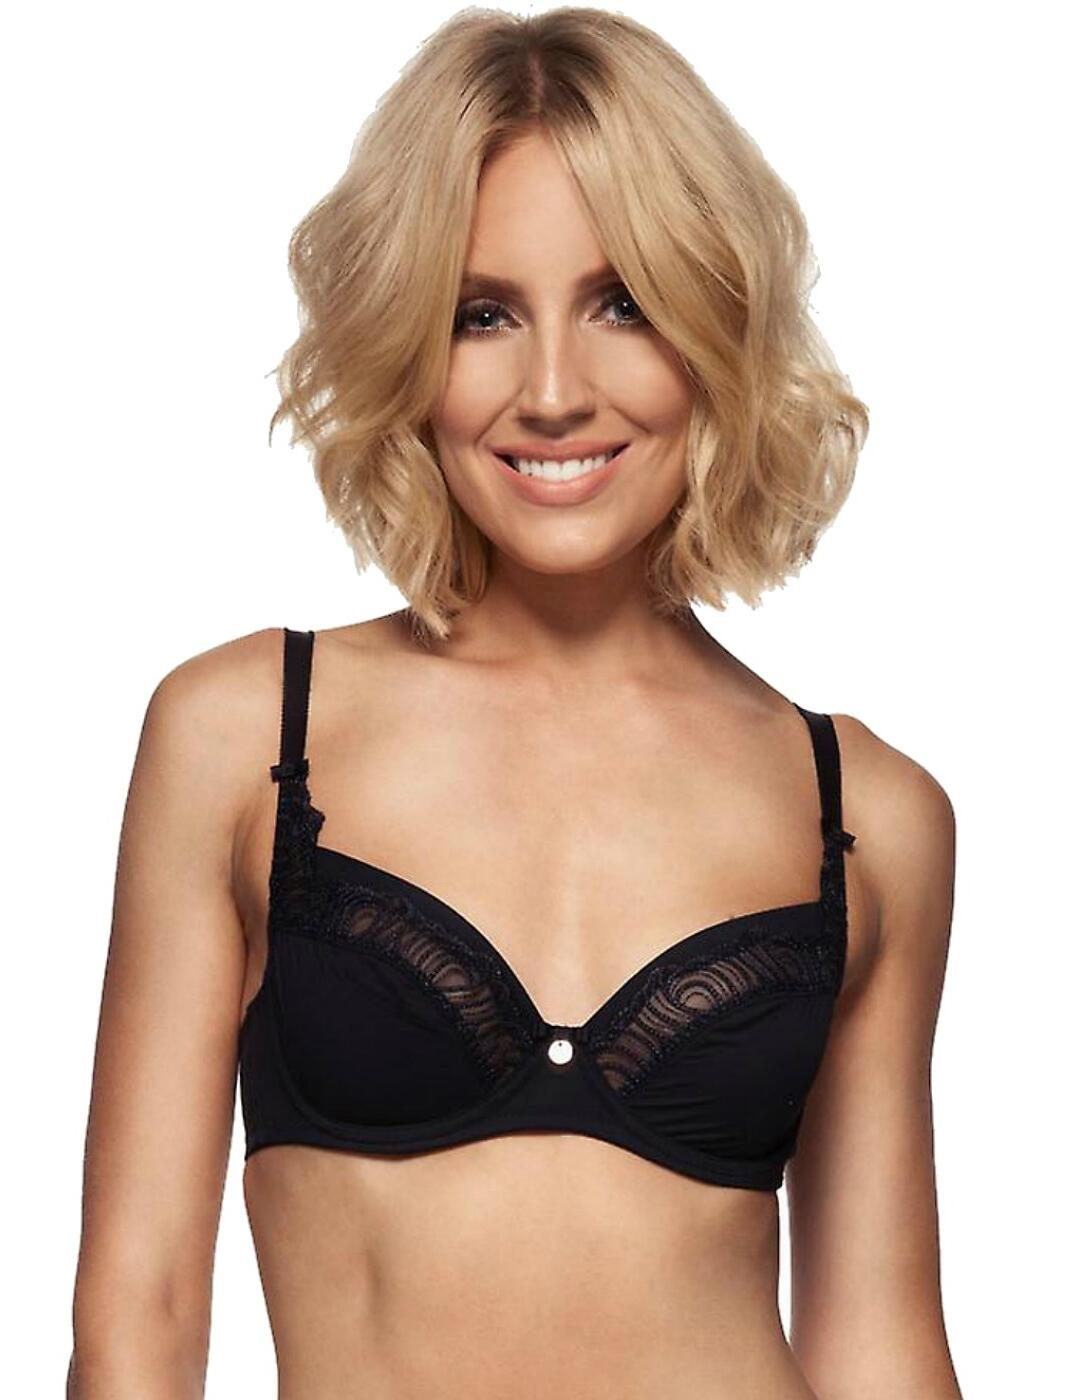 B5071 Berlei Heaven Underwired Bra - B5071 Black